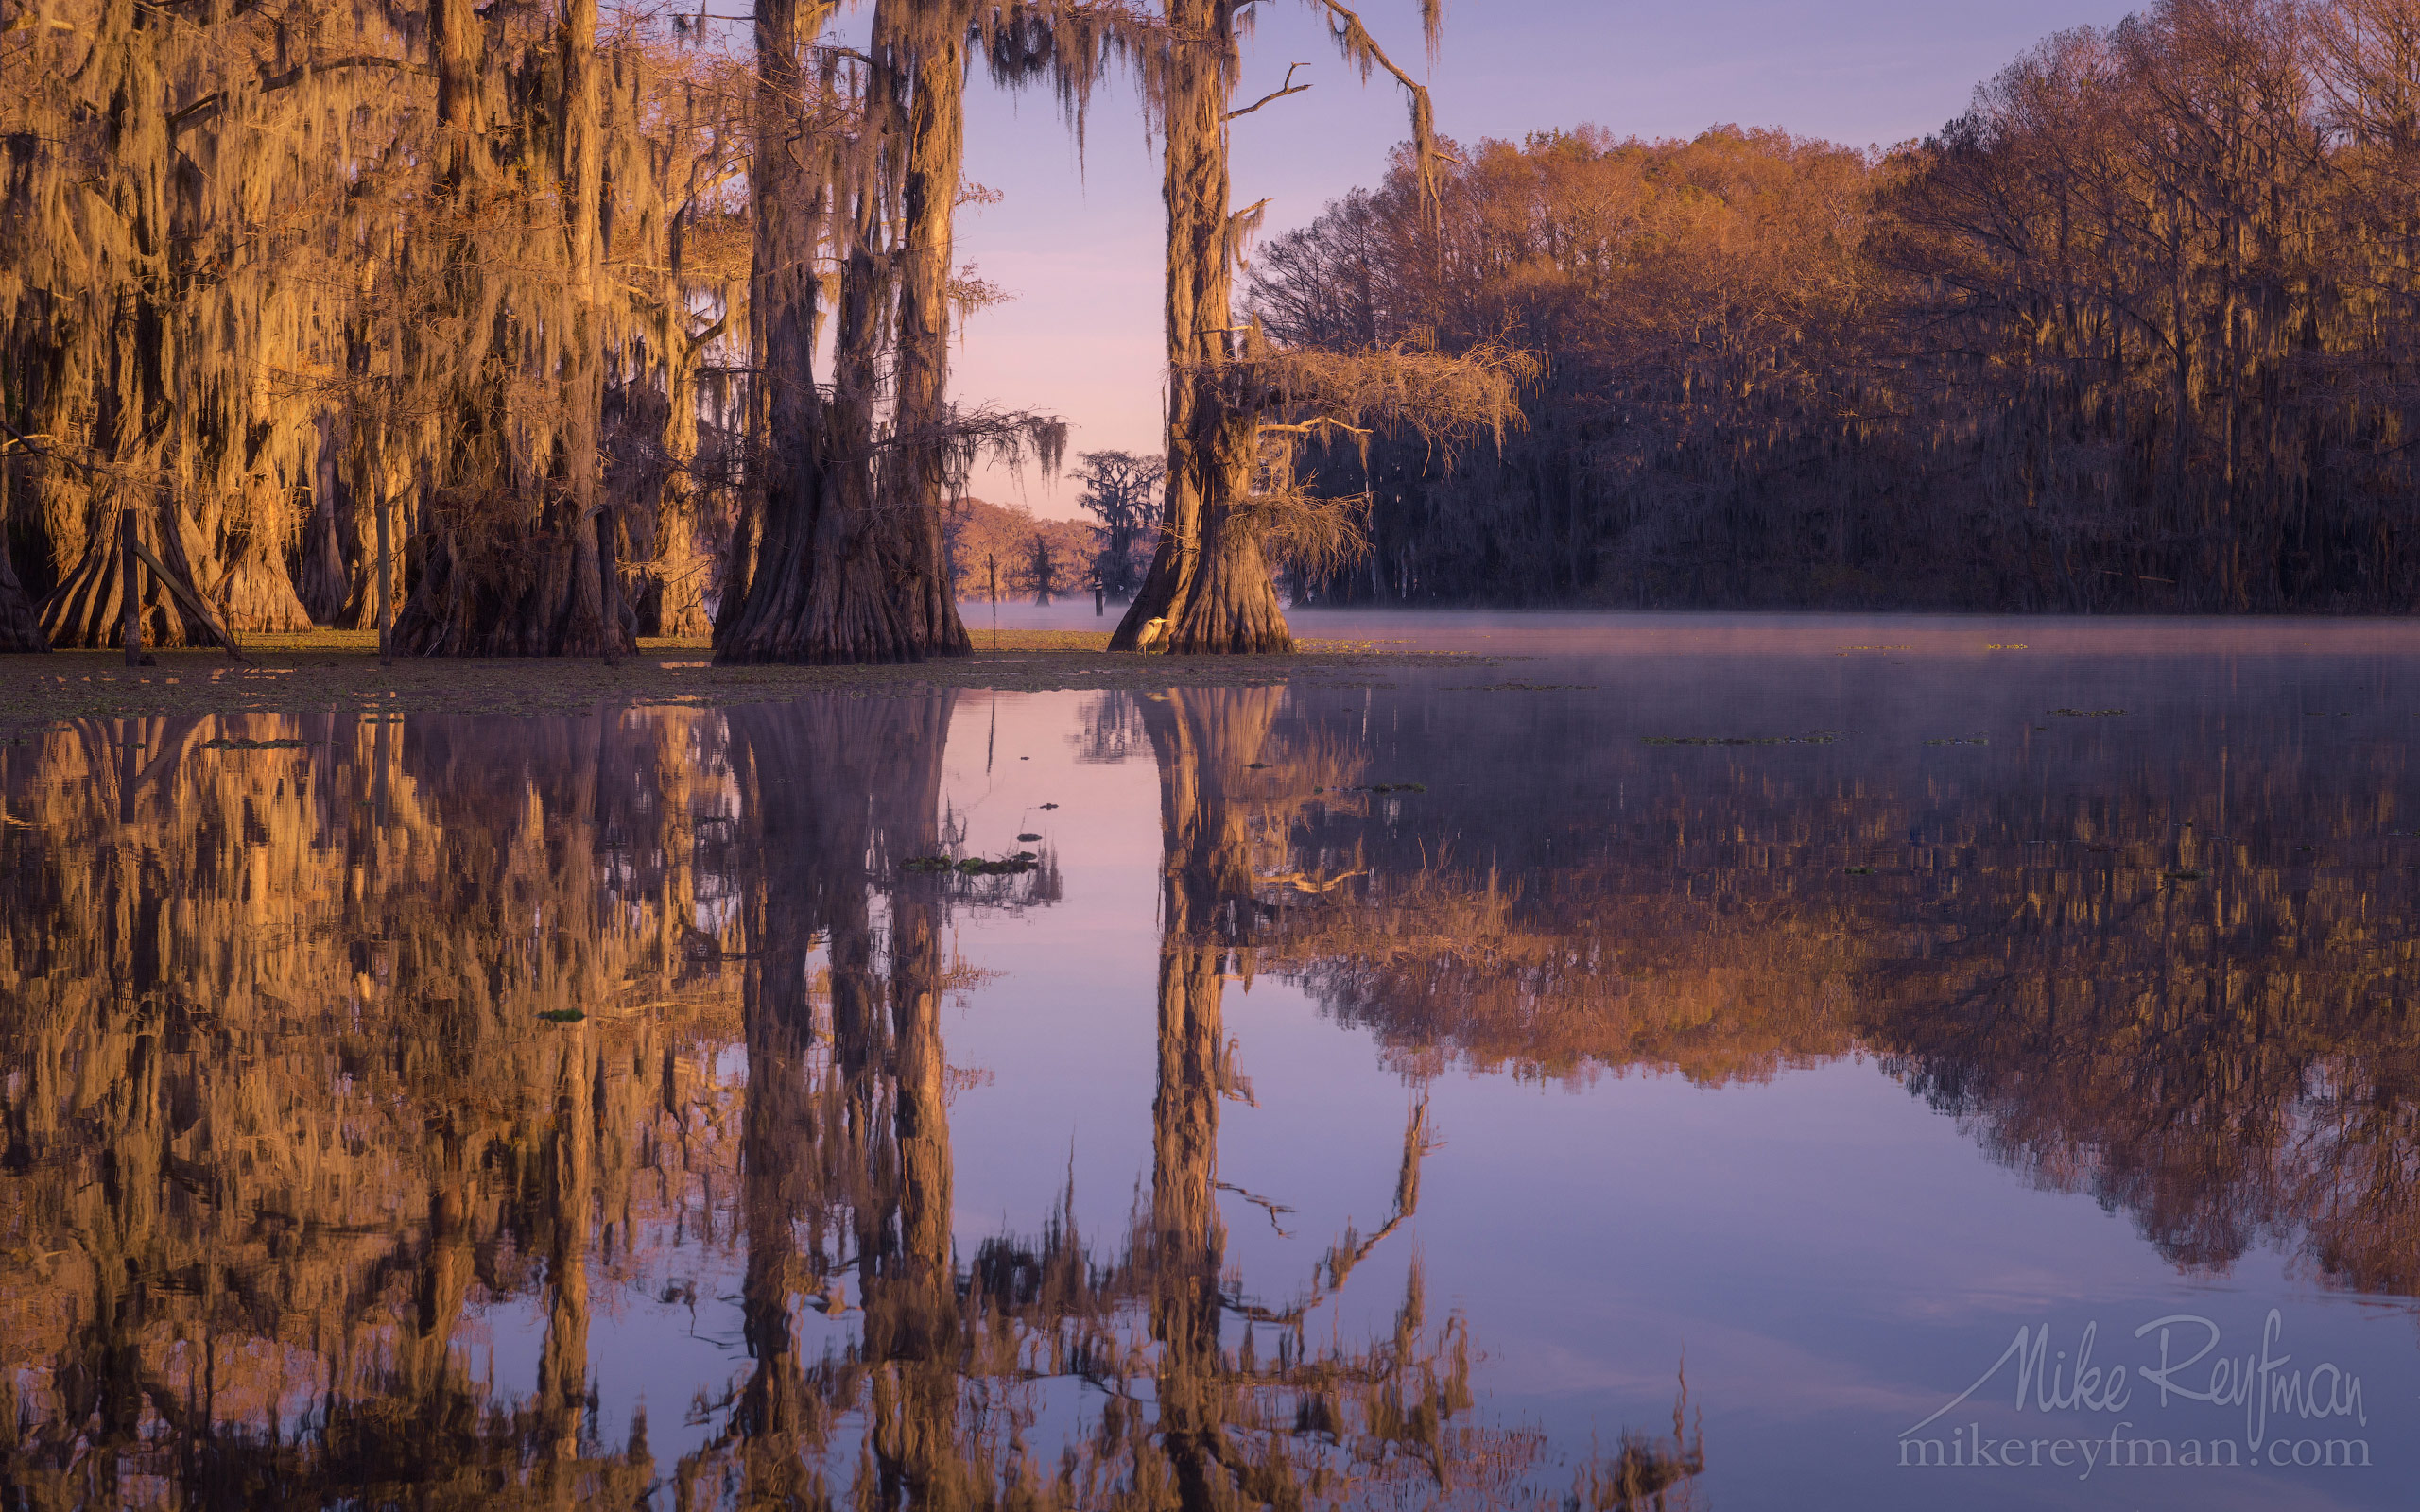 Bald Cypress trees in the watter. Caddo Lake, Texas, US 055-LT1-50A3983.jpg - Bold Cypress and Tupelo Trees in the swamps of Atchafalaya River Basin. Caddo, Martin and Fousse Lakes. Texas/Louisiana, USA. - Mike Reyfman Photography